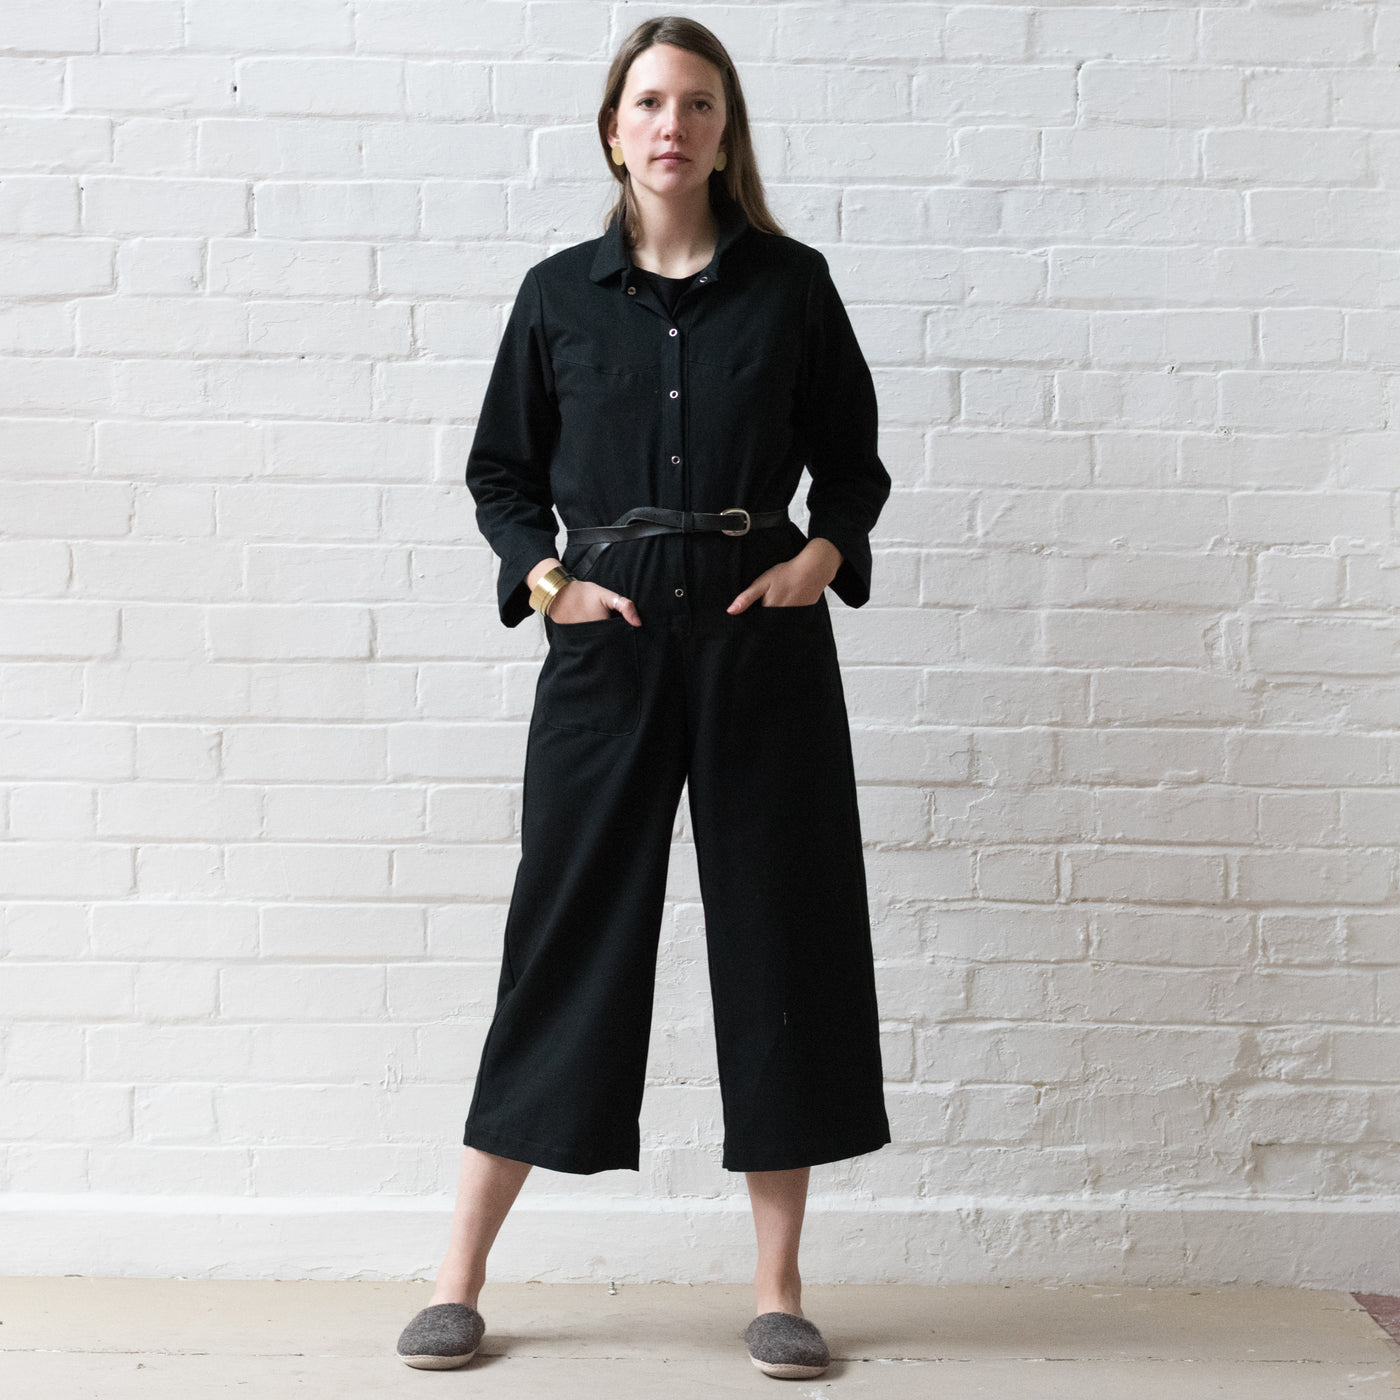 Jumpsuit - Black twill